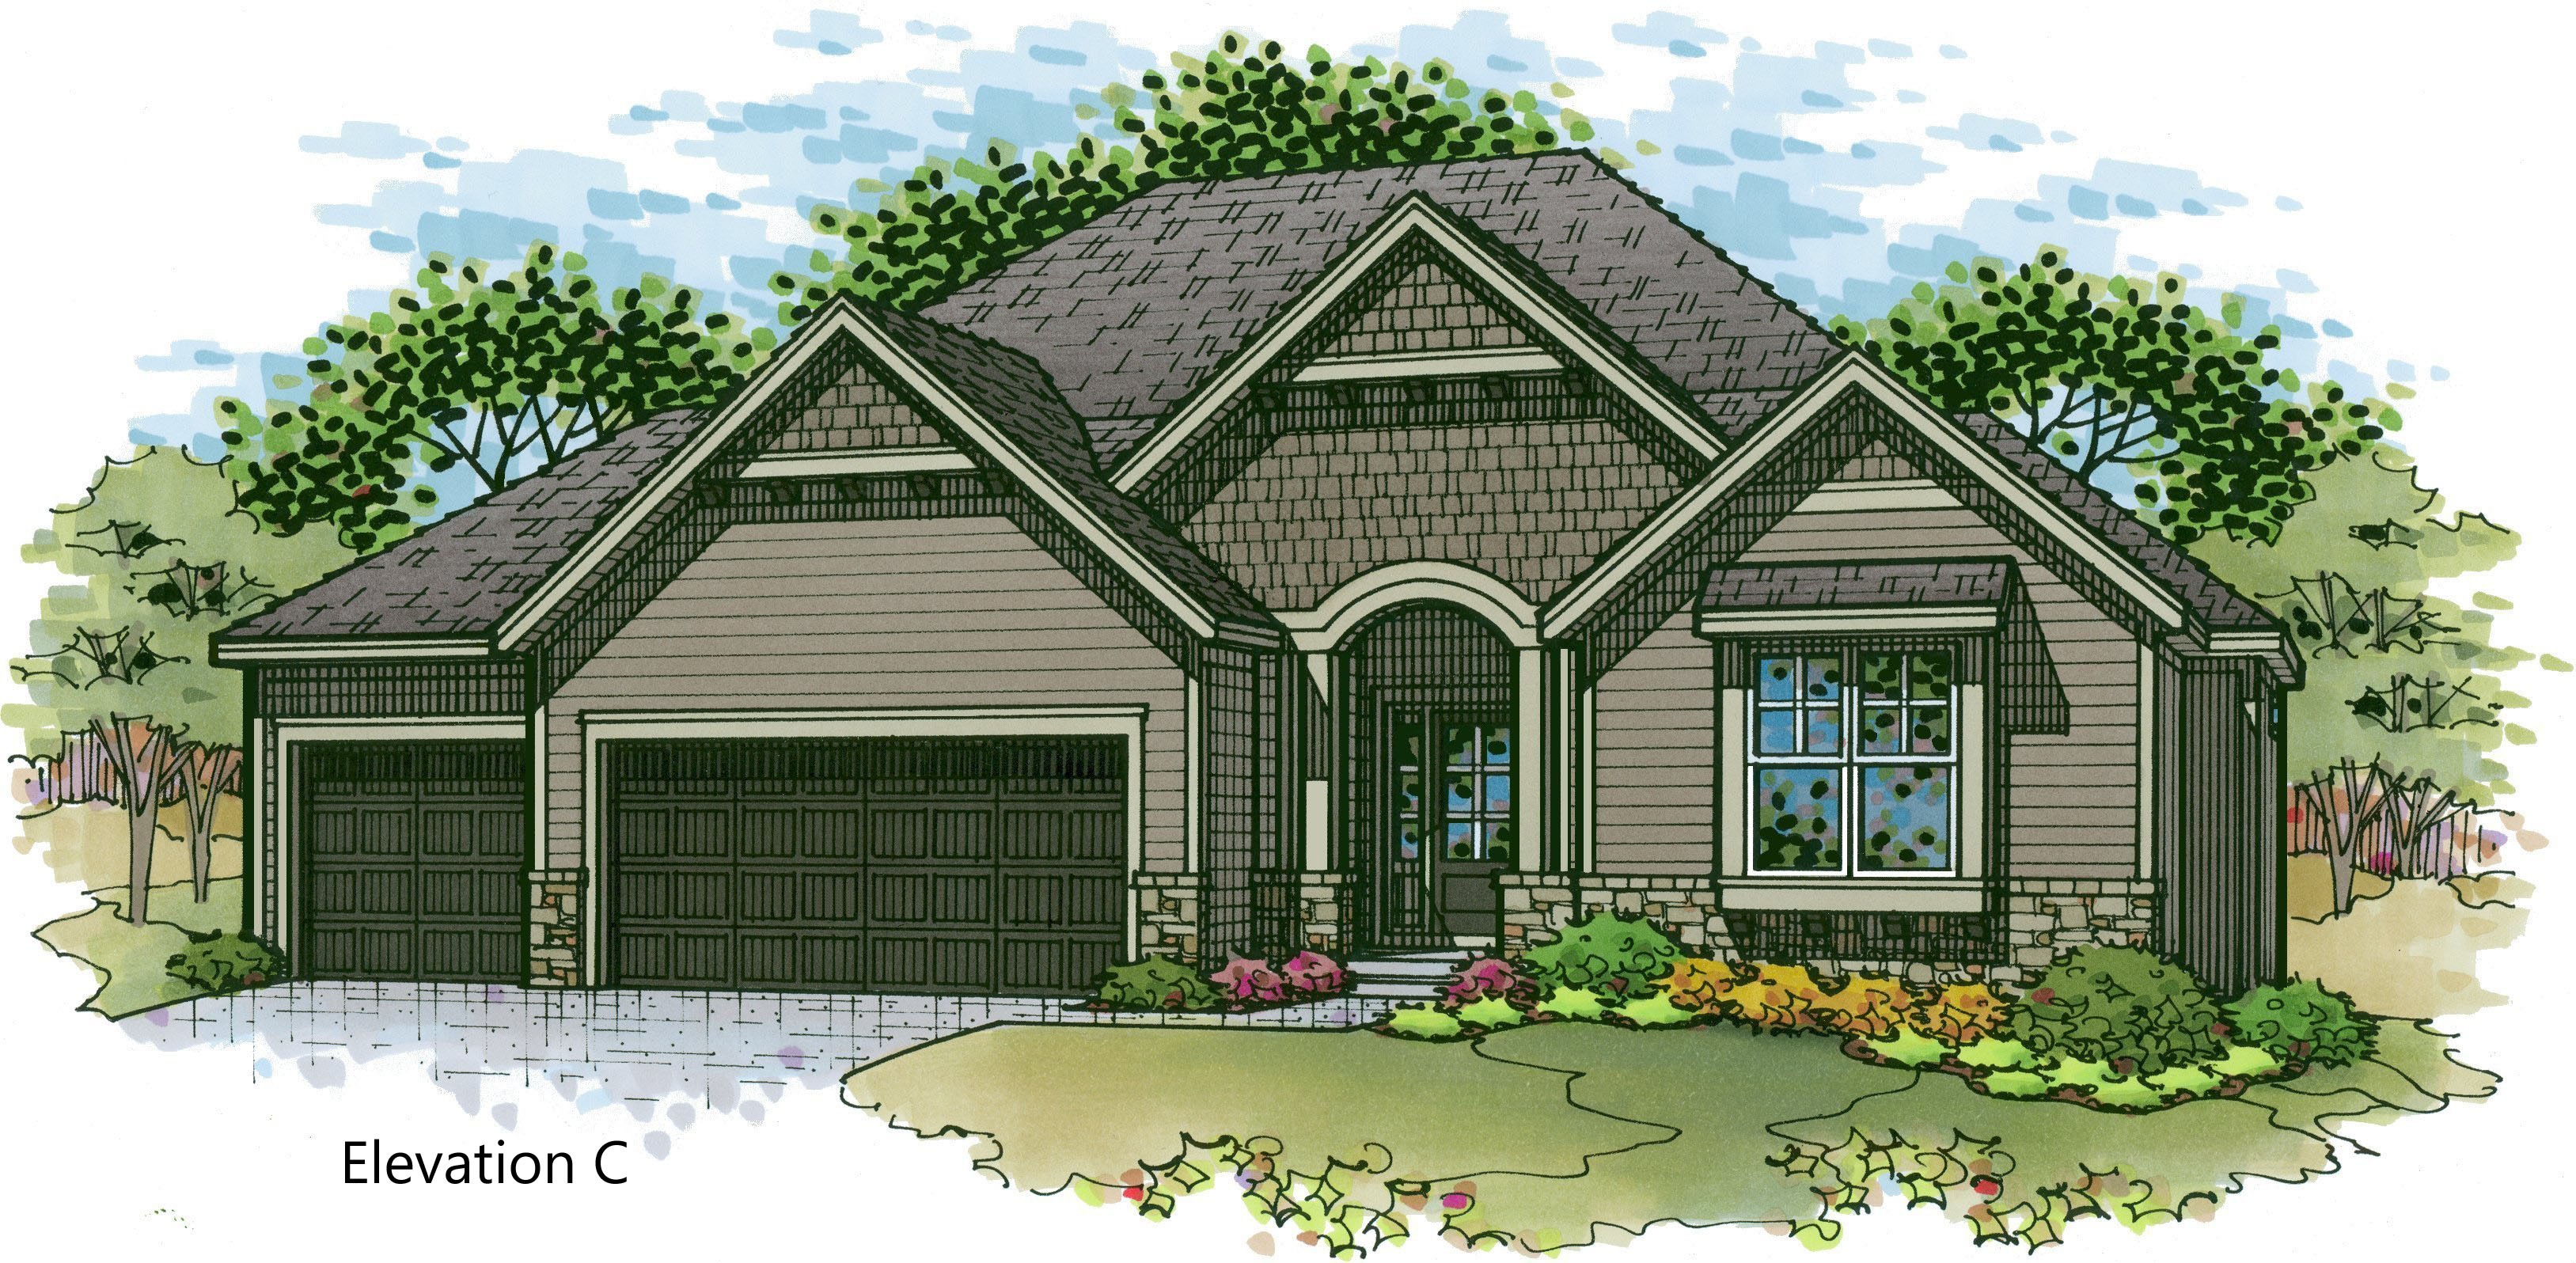 Aspen elev. C color rendering